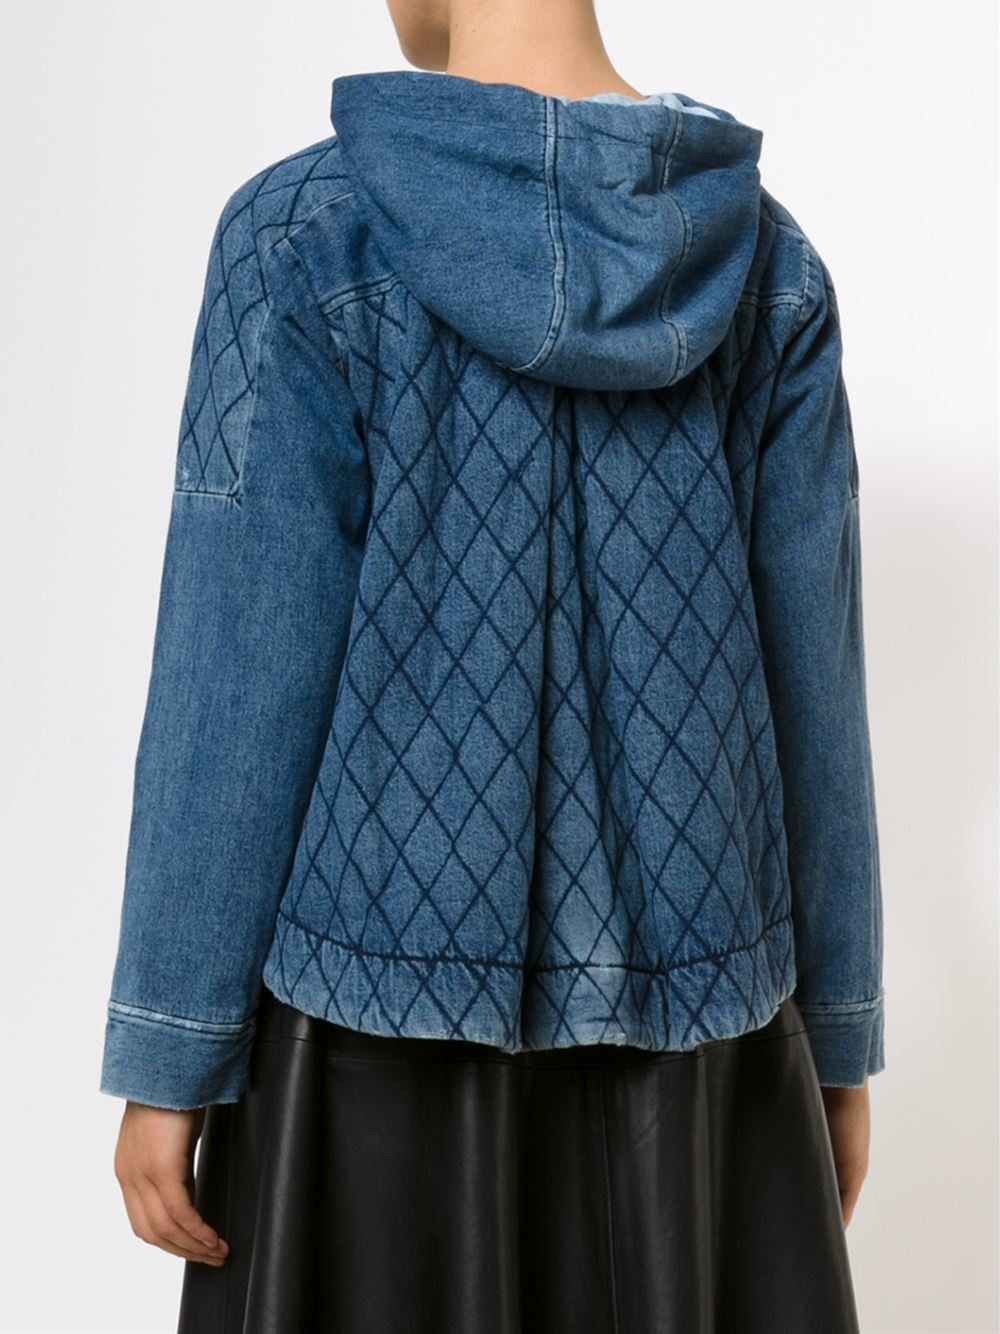 Shop Women's Jackets & Blazers at distrib-u5b2od.ga Factory and find everyday deals on Women's Outerwear.